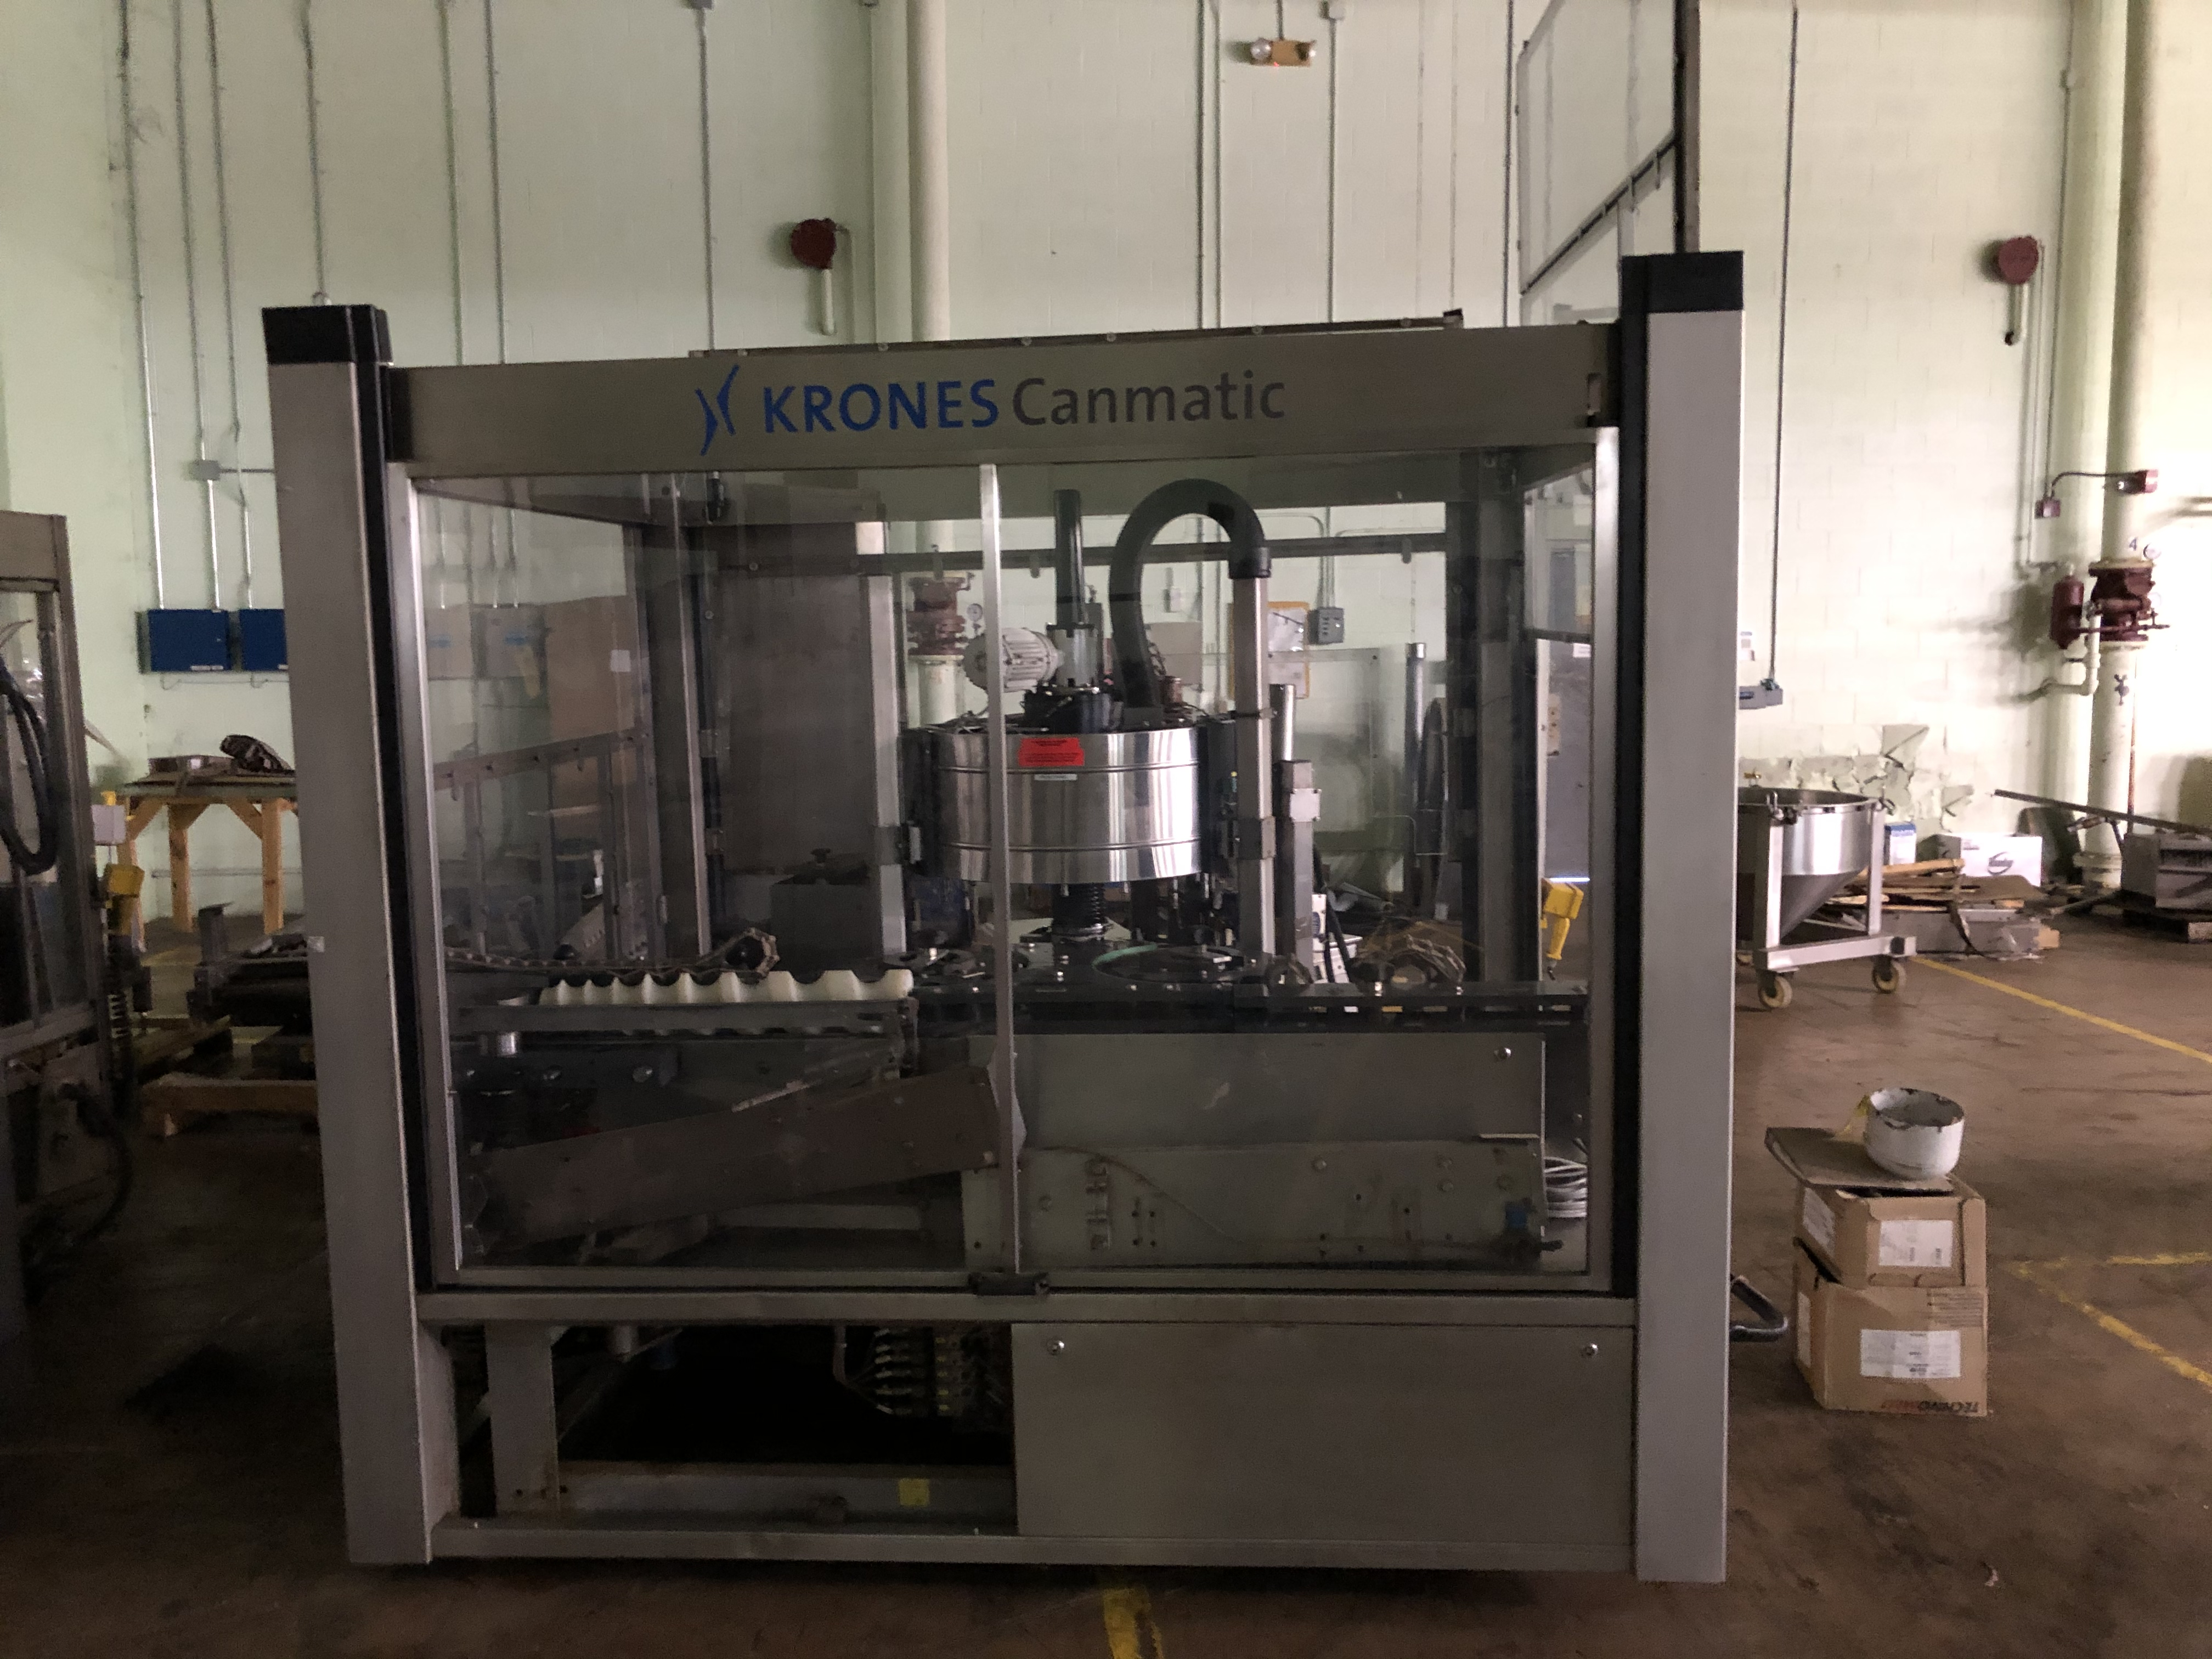 Krones Canmatic Labeler, Machine #073-Q83, RIGGING FEE - $1750 - Image 4 of 5